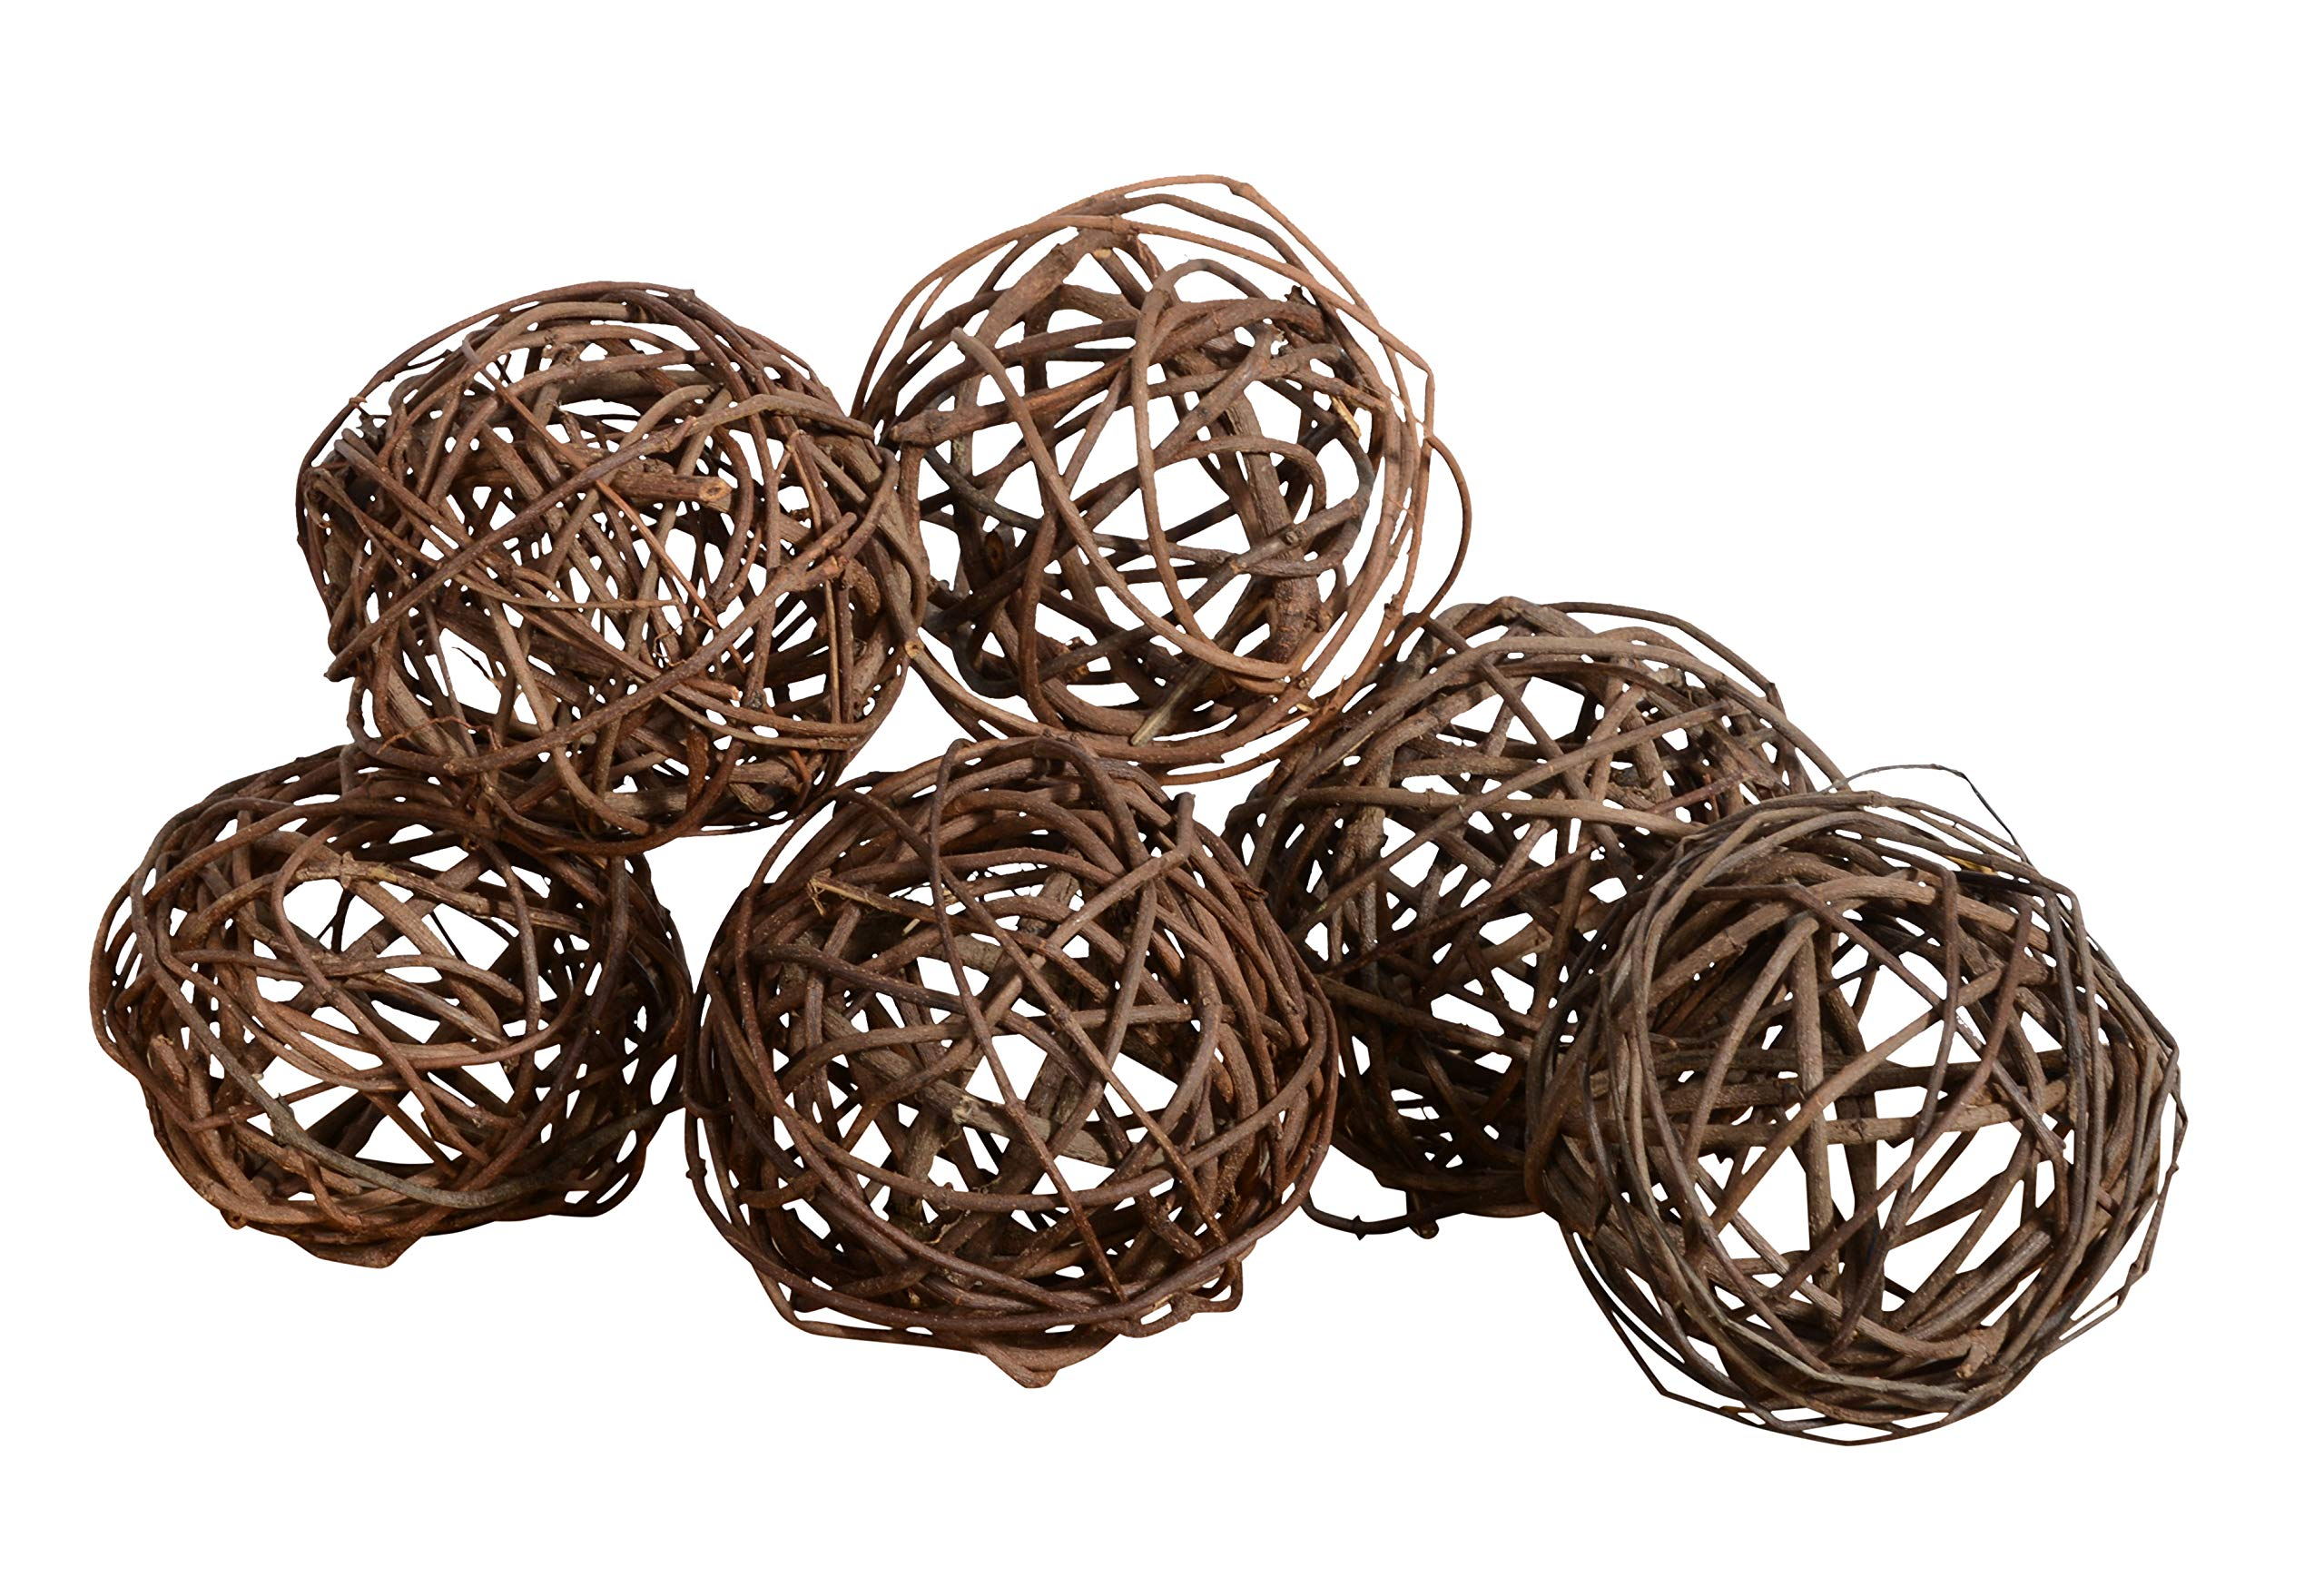 Set of 6 Natural Vine Balls 4 Inches Diameter, Bowl and Vase Filler by Ten Waterloo